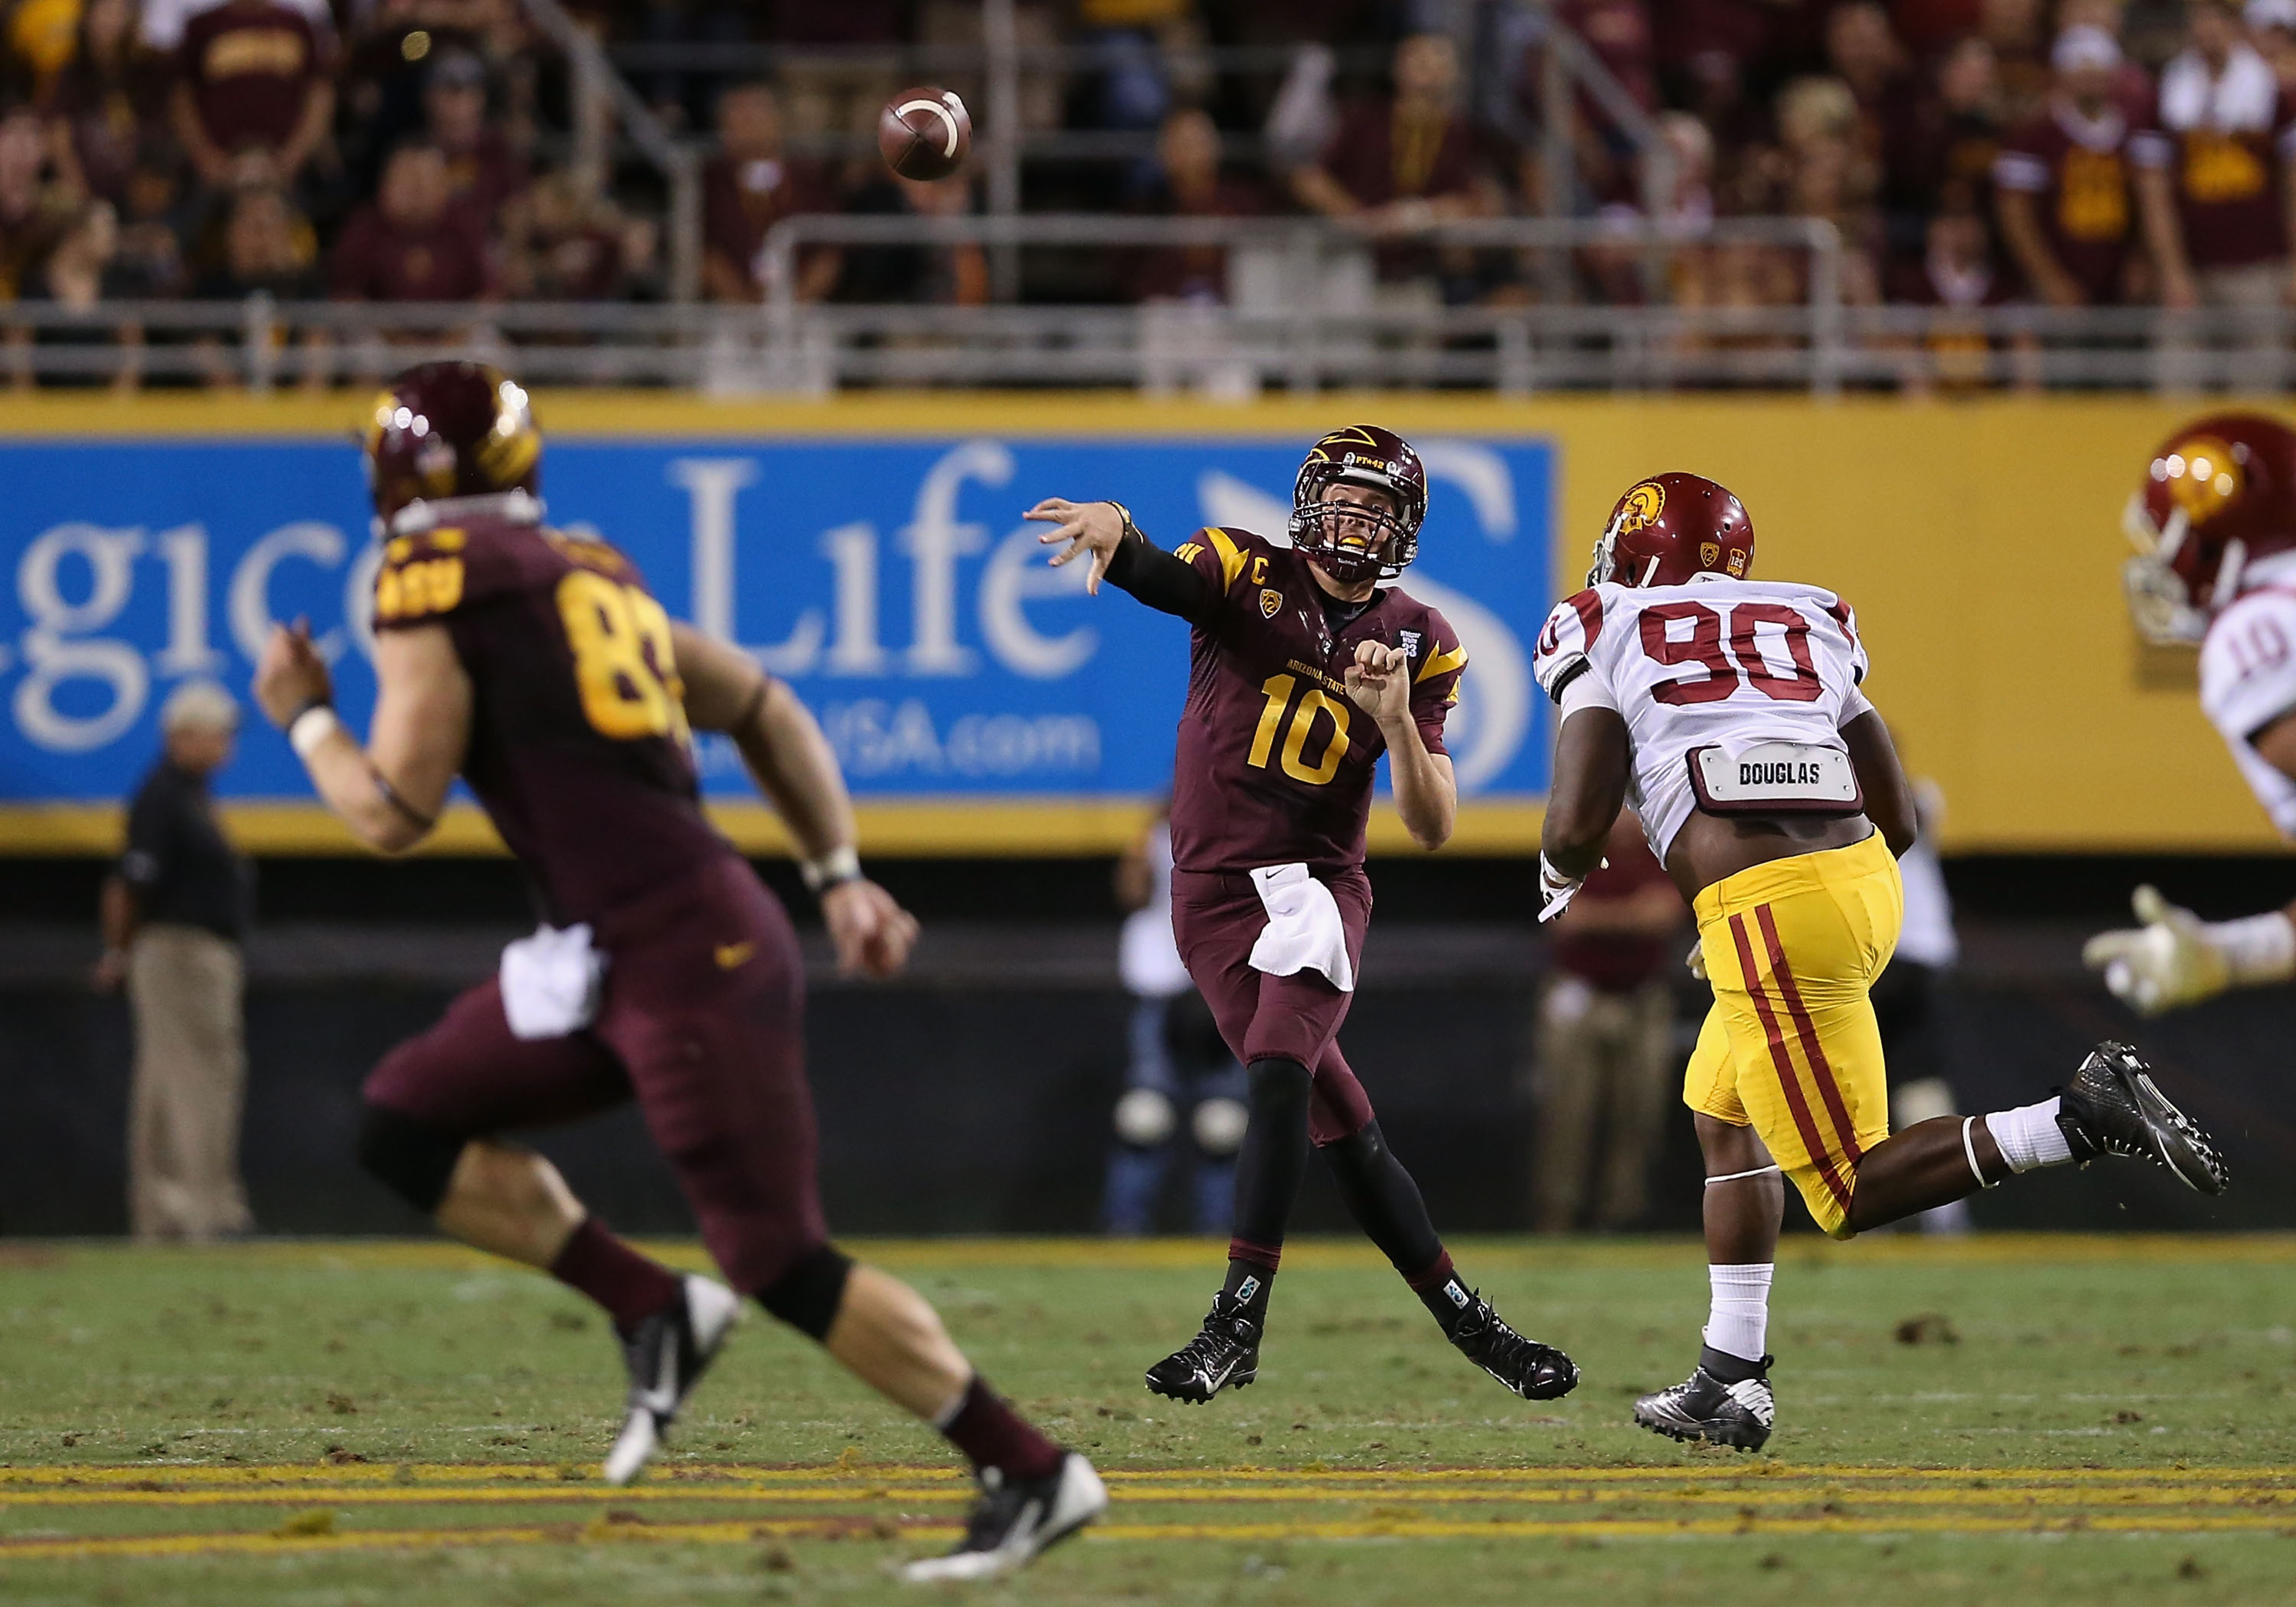 Taylor Kelly found six different receivers and threw for three touchdowns against the Trojans.